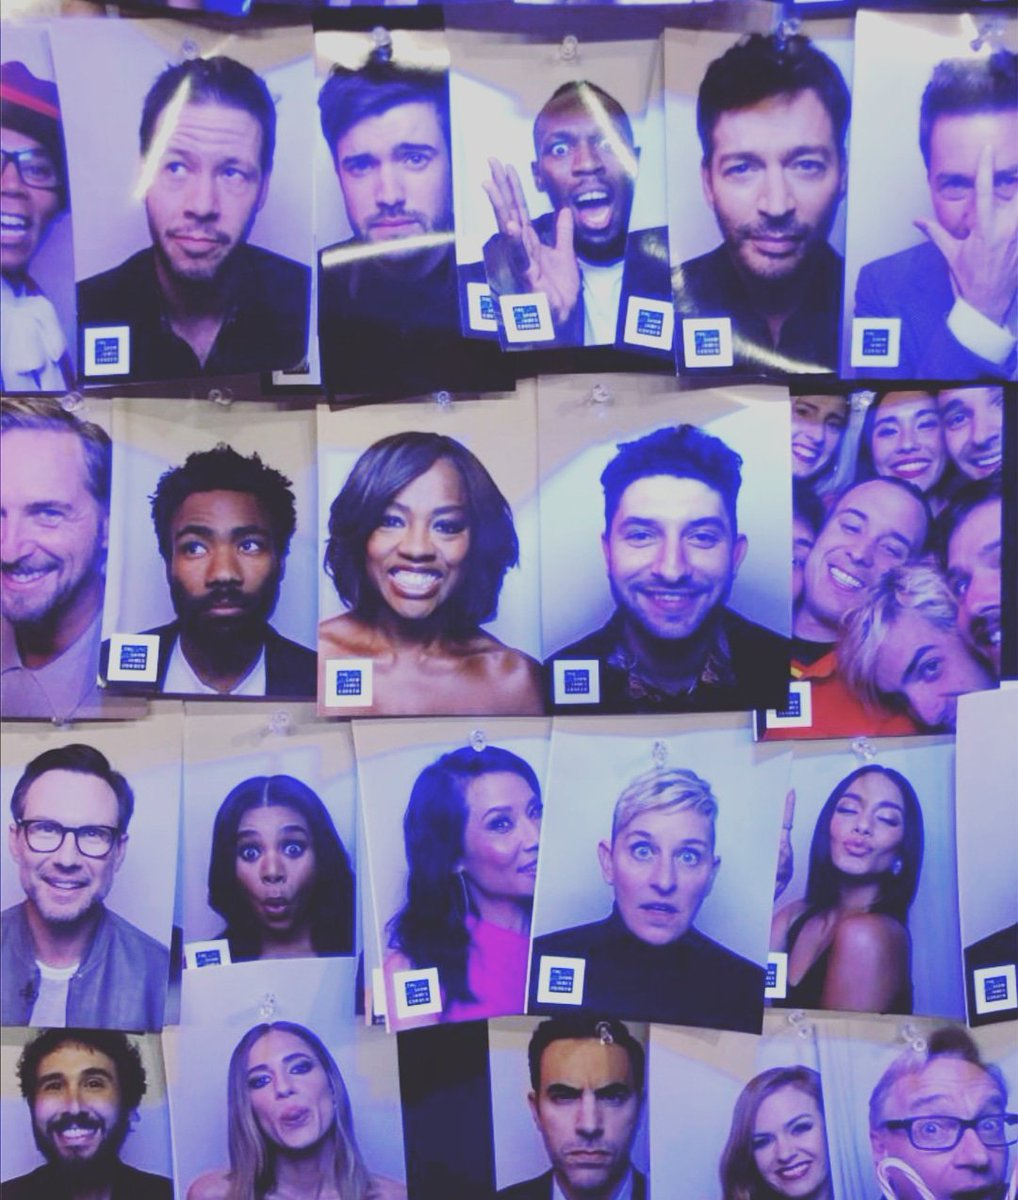 Well this is hillarious. My goofy face made it onto the Late Late shows wall of fame, right in the middle of some of the biggest stars in the world. Repping Northampton music scene in L.A.  Anyone I've missed? #ellen #usainbolt #latelateshow #sachabaroncohen #jackwhitehallpic.twitter.com/qcwVFVIyeW